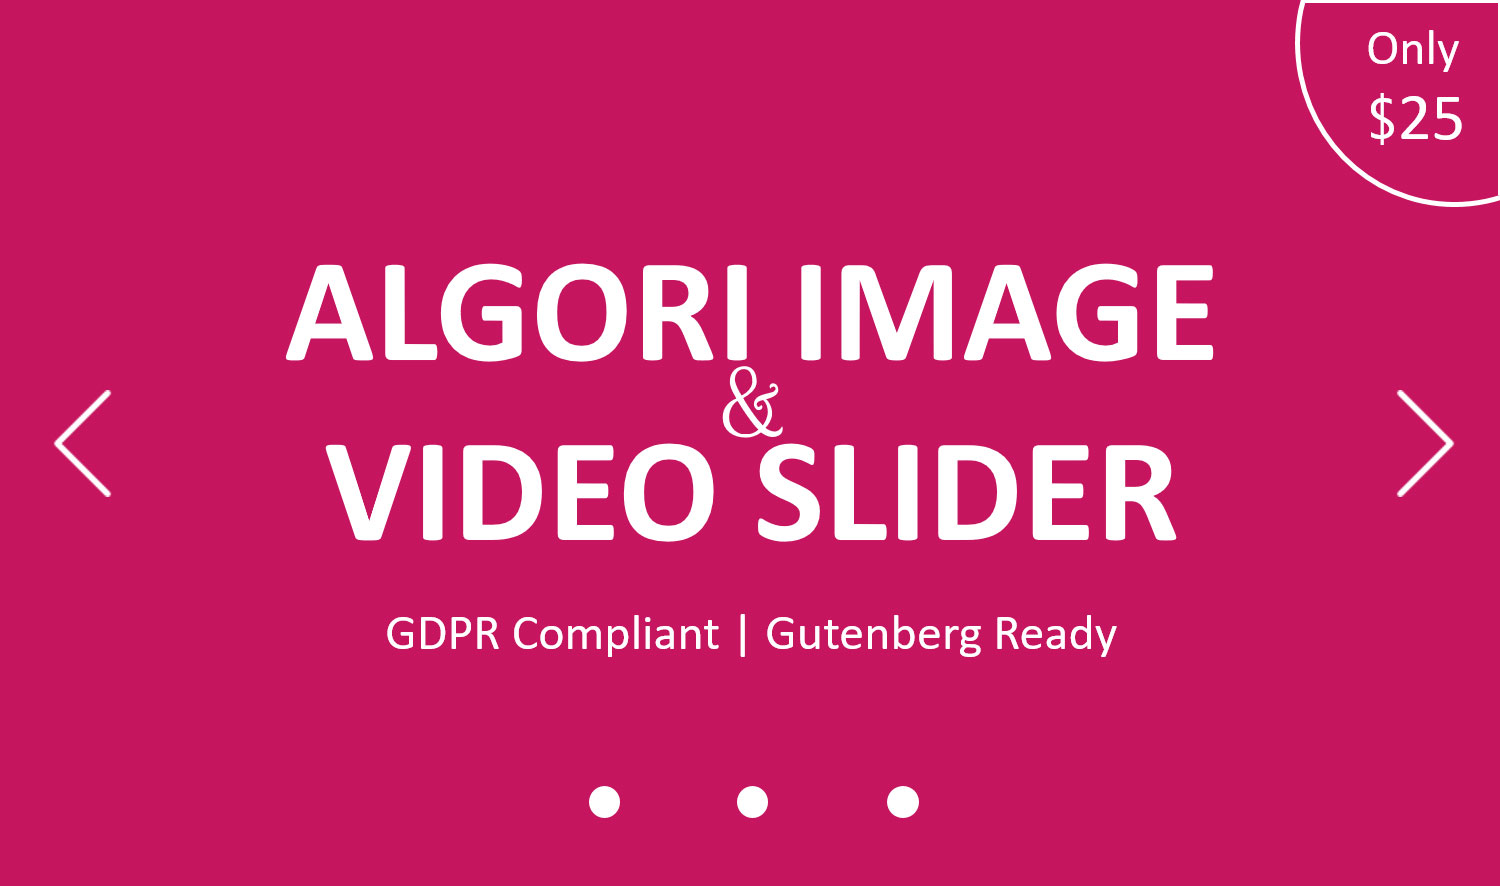 Algori Image & Video Slider Pro for WordPress Gutenberg